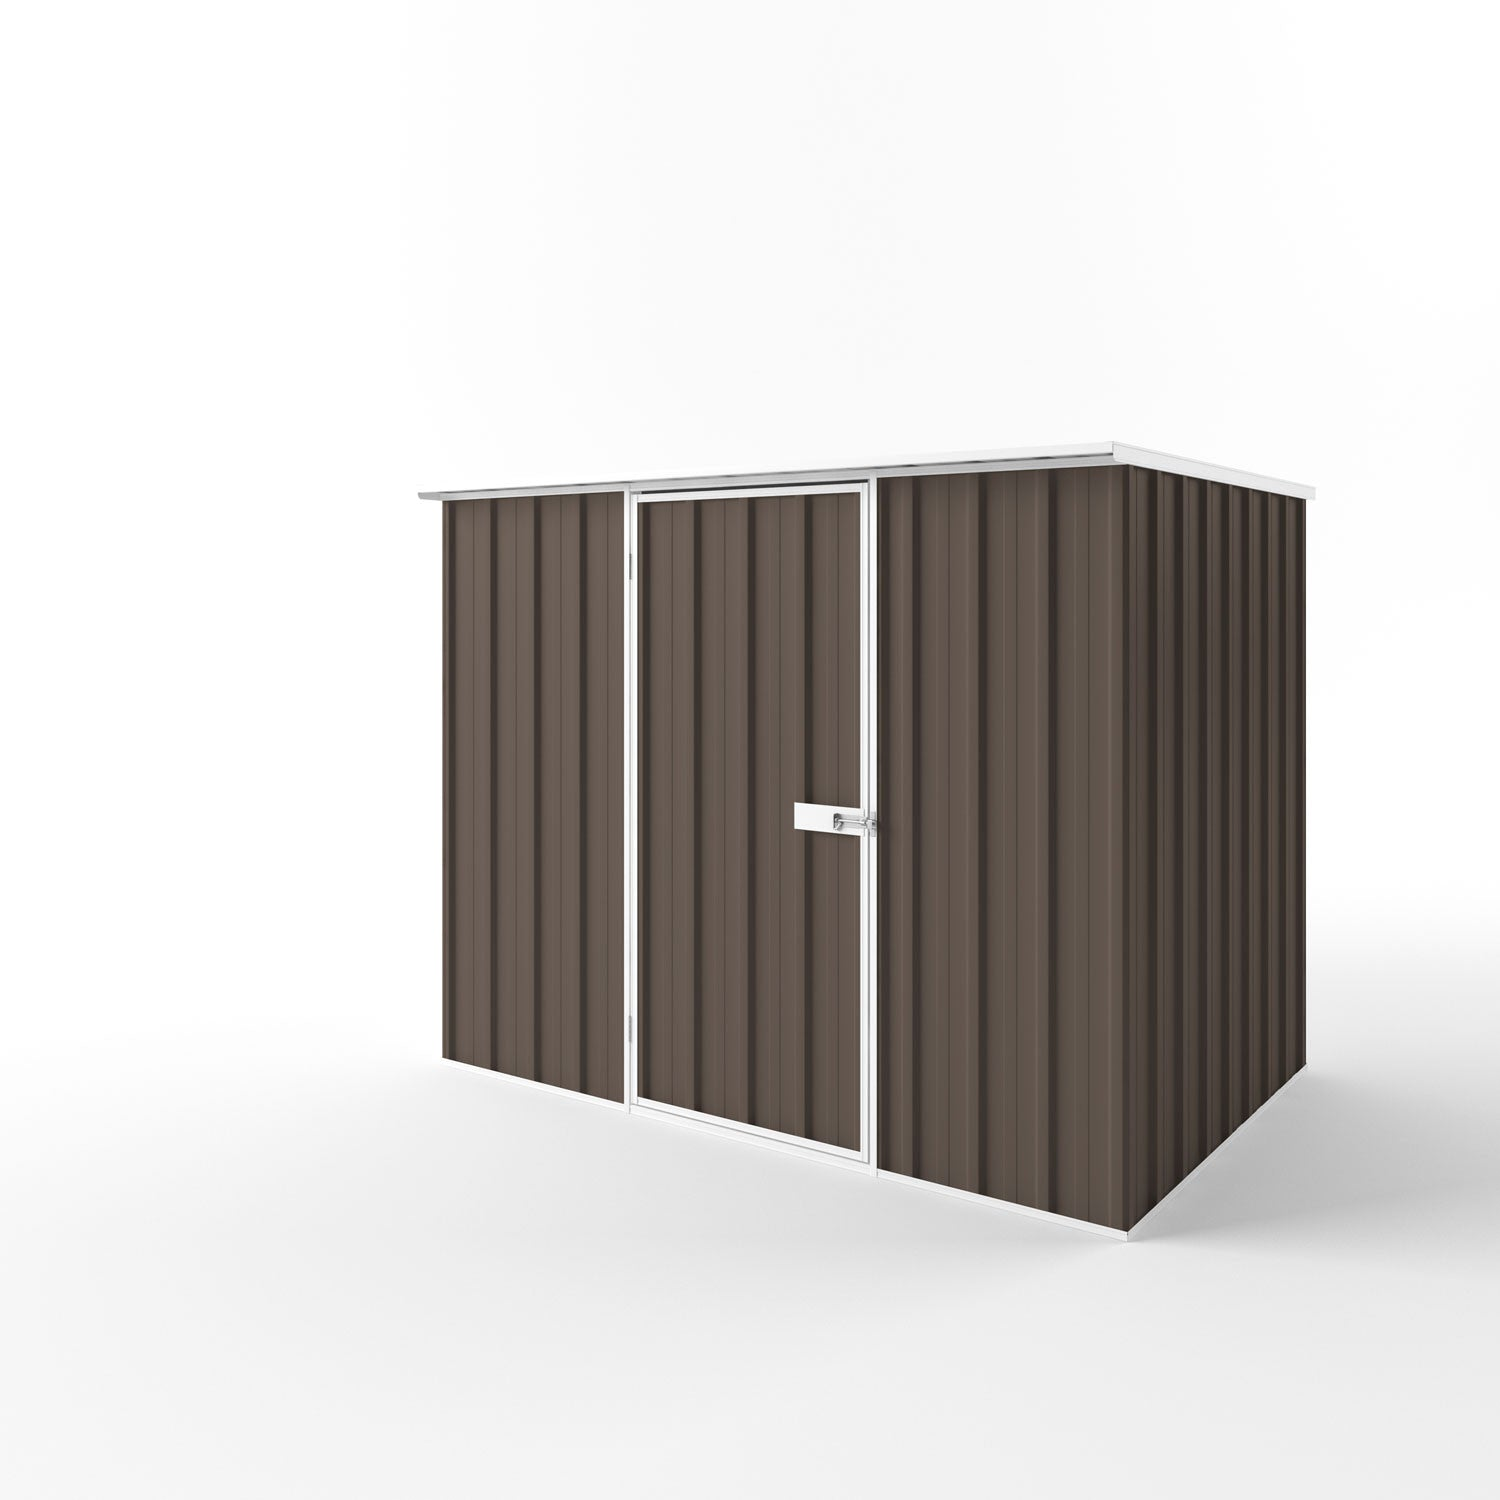 Flat Roof Garden Shed - 2.25m x 1.50m x 2.12m Height - Wide Span Sheds